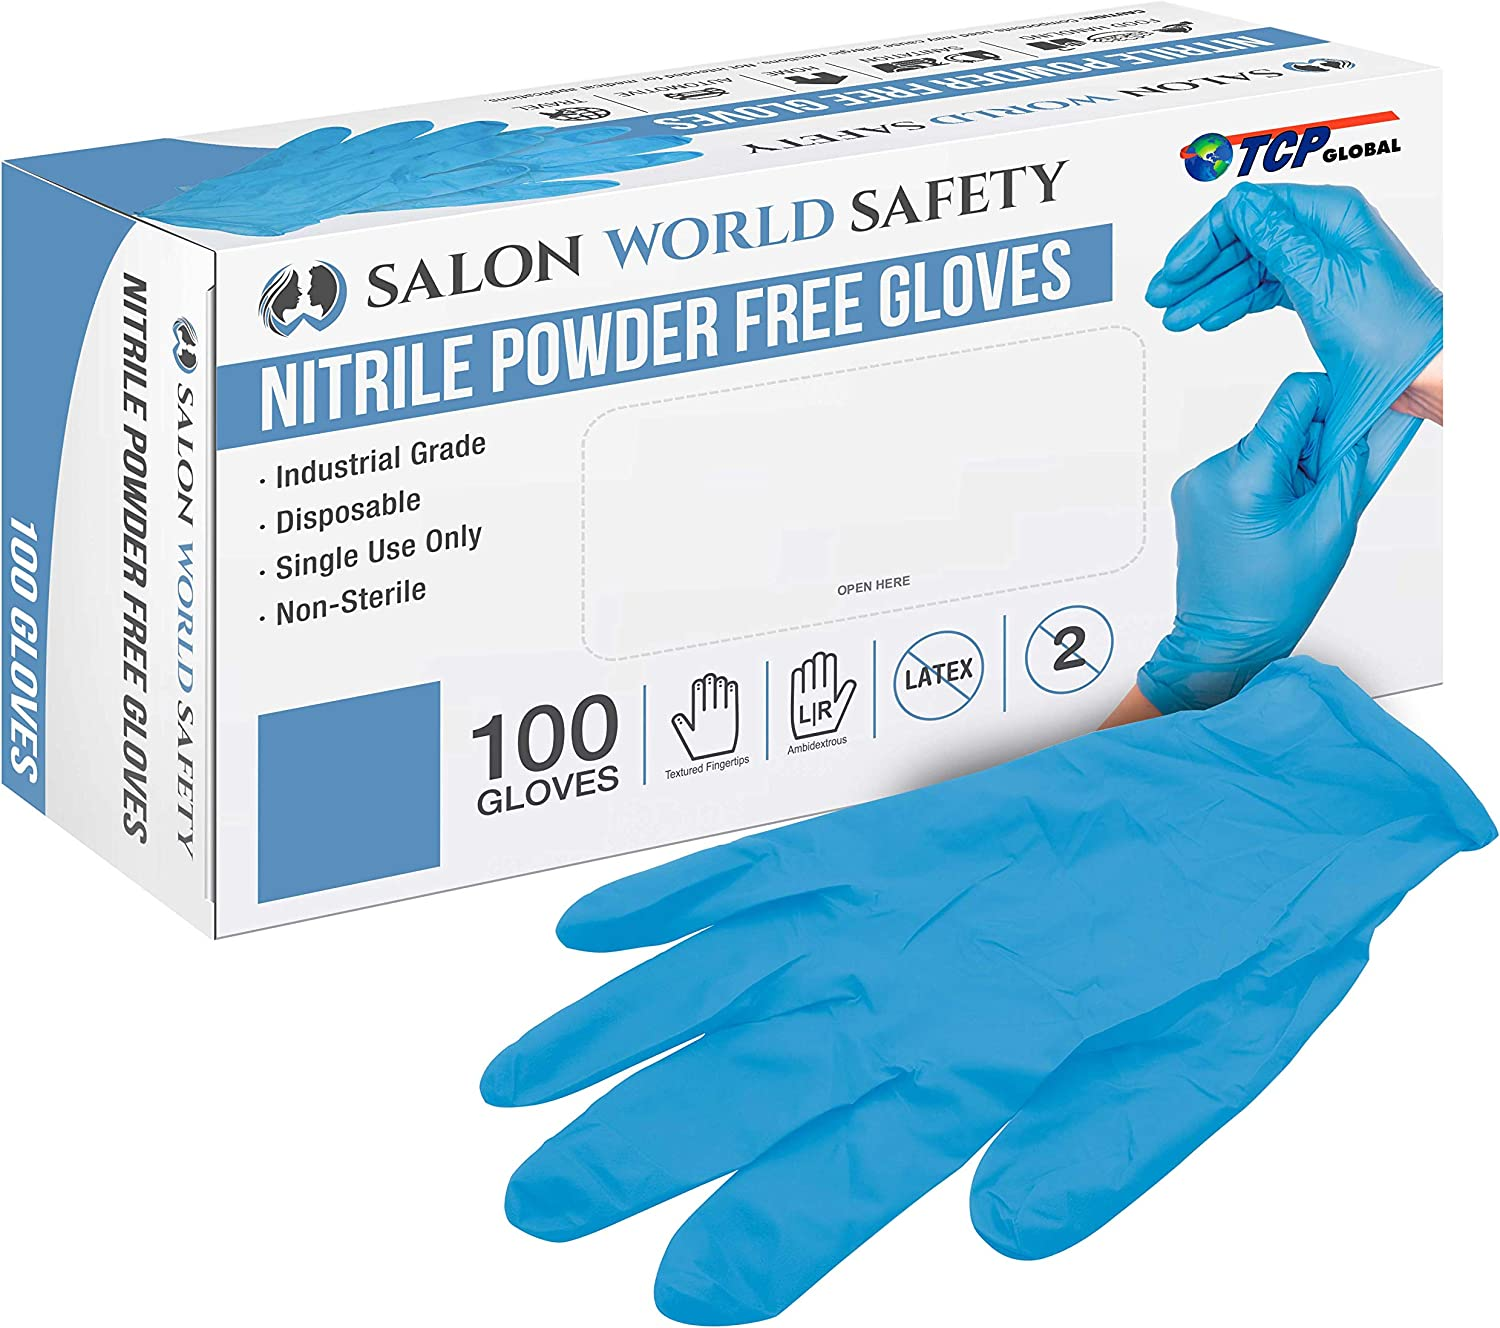 Salon World Safety Blue Nitrile Disposable Gloves, 3.5 Mil - Latex Free, Textured Tips, Food Safe